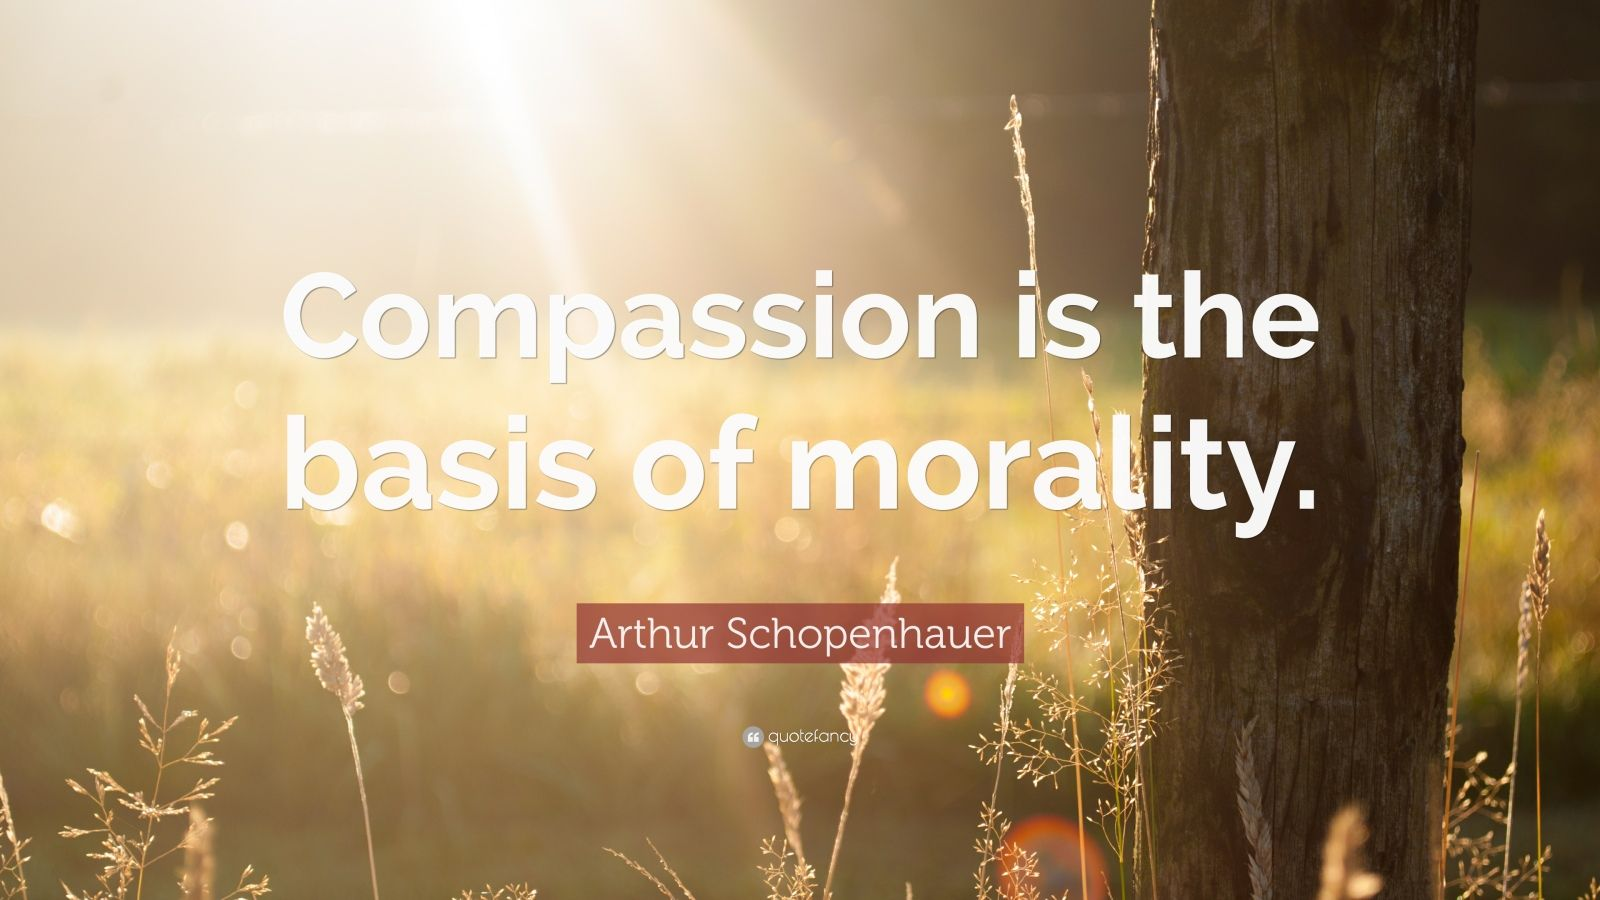 """essay on compassion is the basis of all morality His essay, """"famine, affluence, and morality,"""" focuses on the morality is the basis of life universal compassion is the only guarantee of morality."""